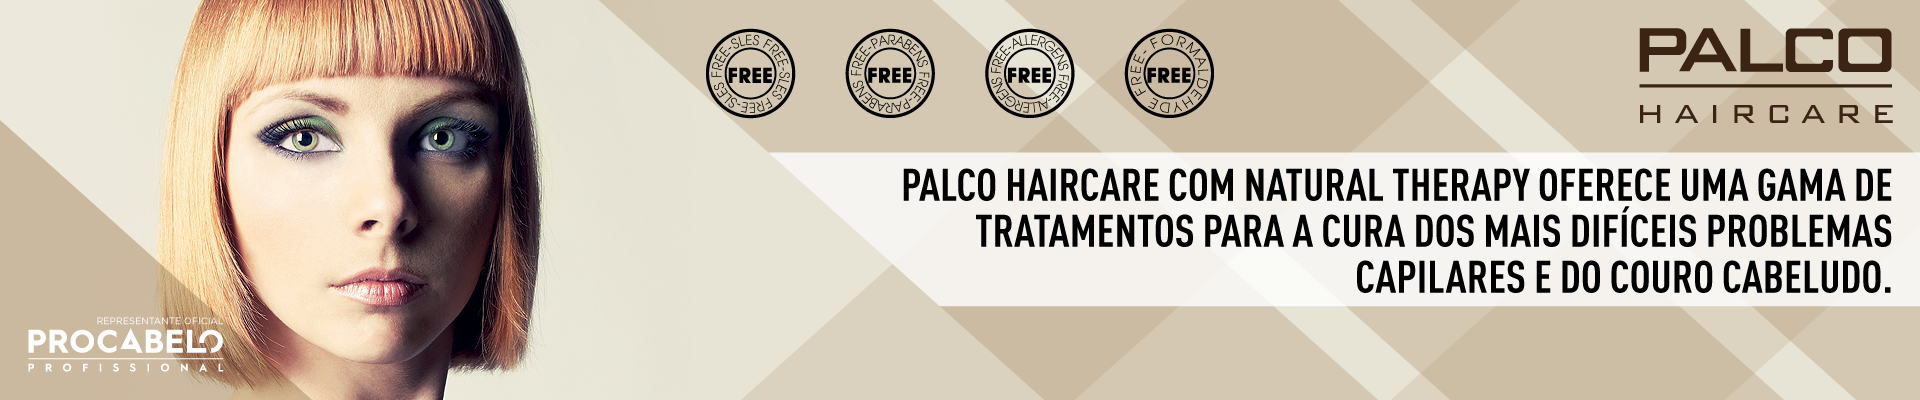 HAIR CARE NATURAL THERAPY Palco